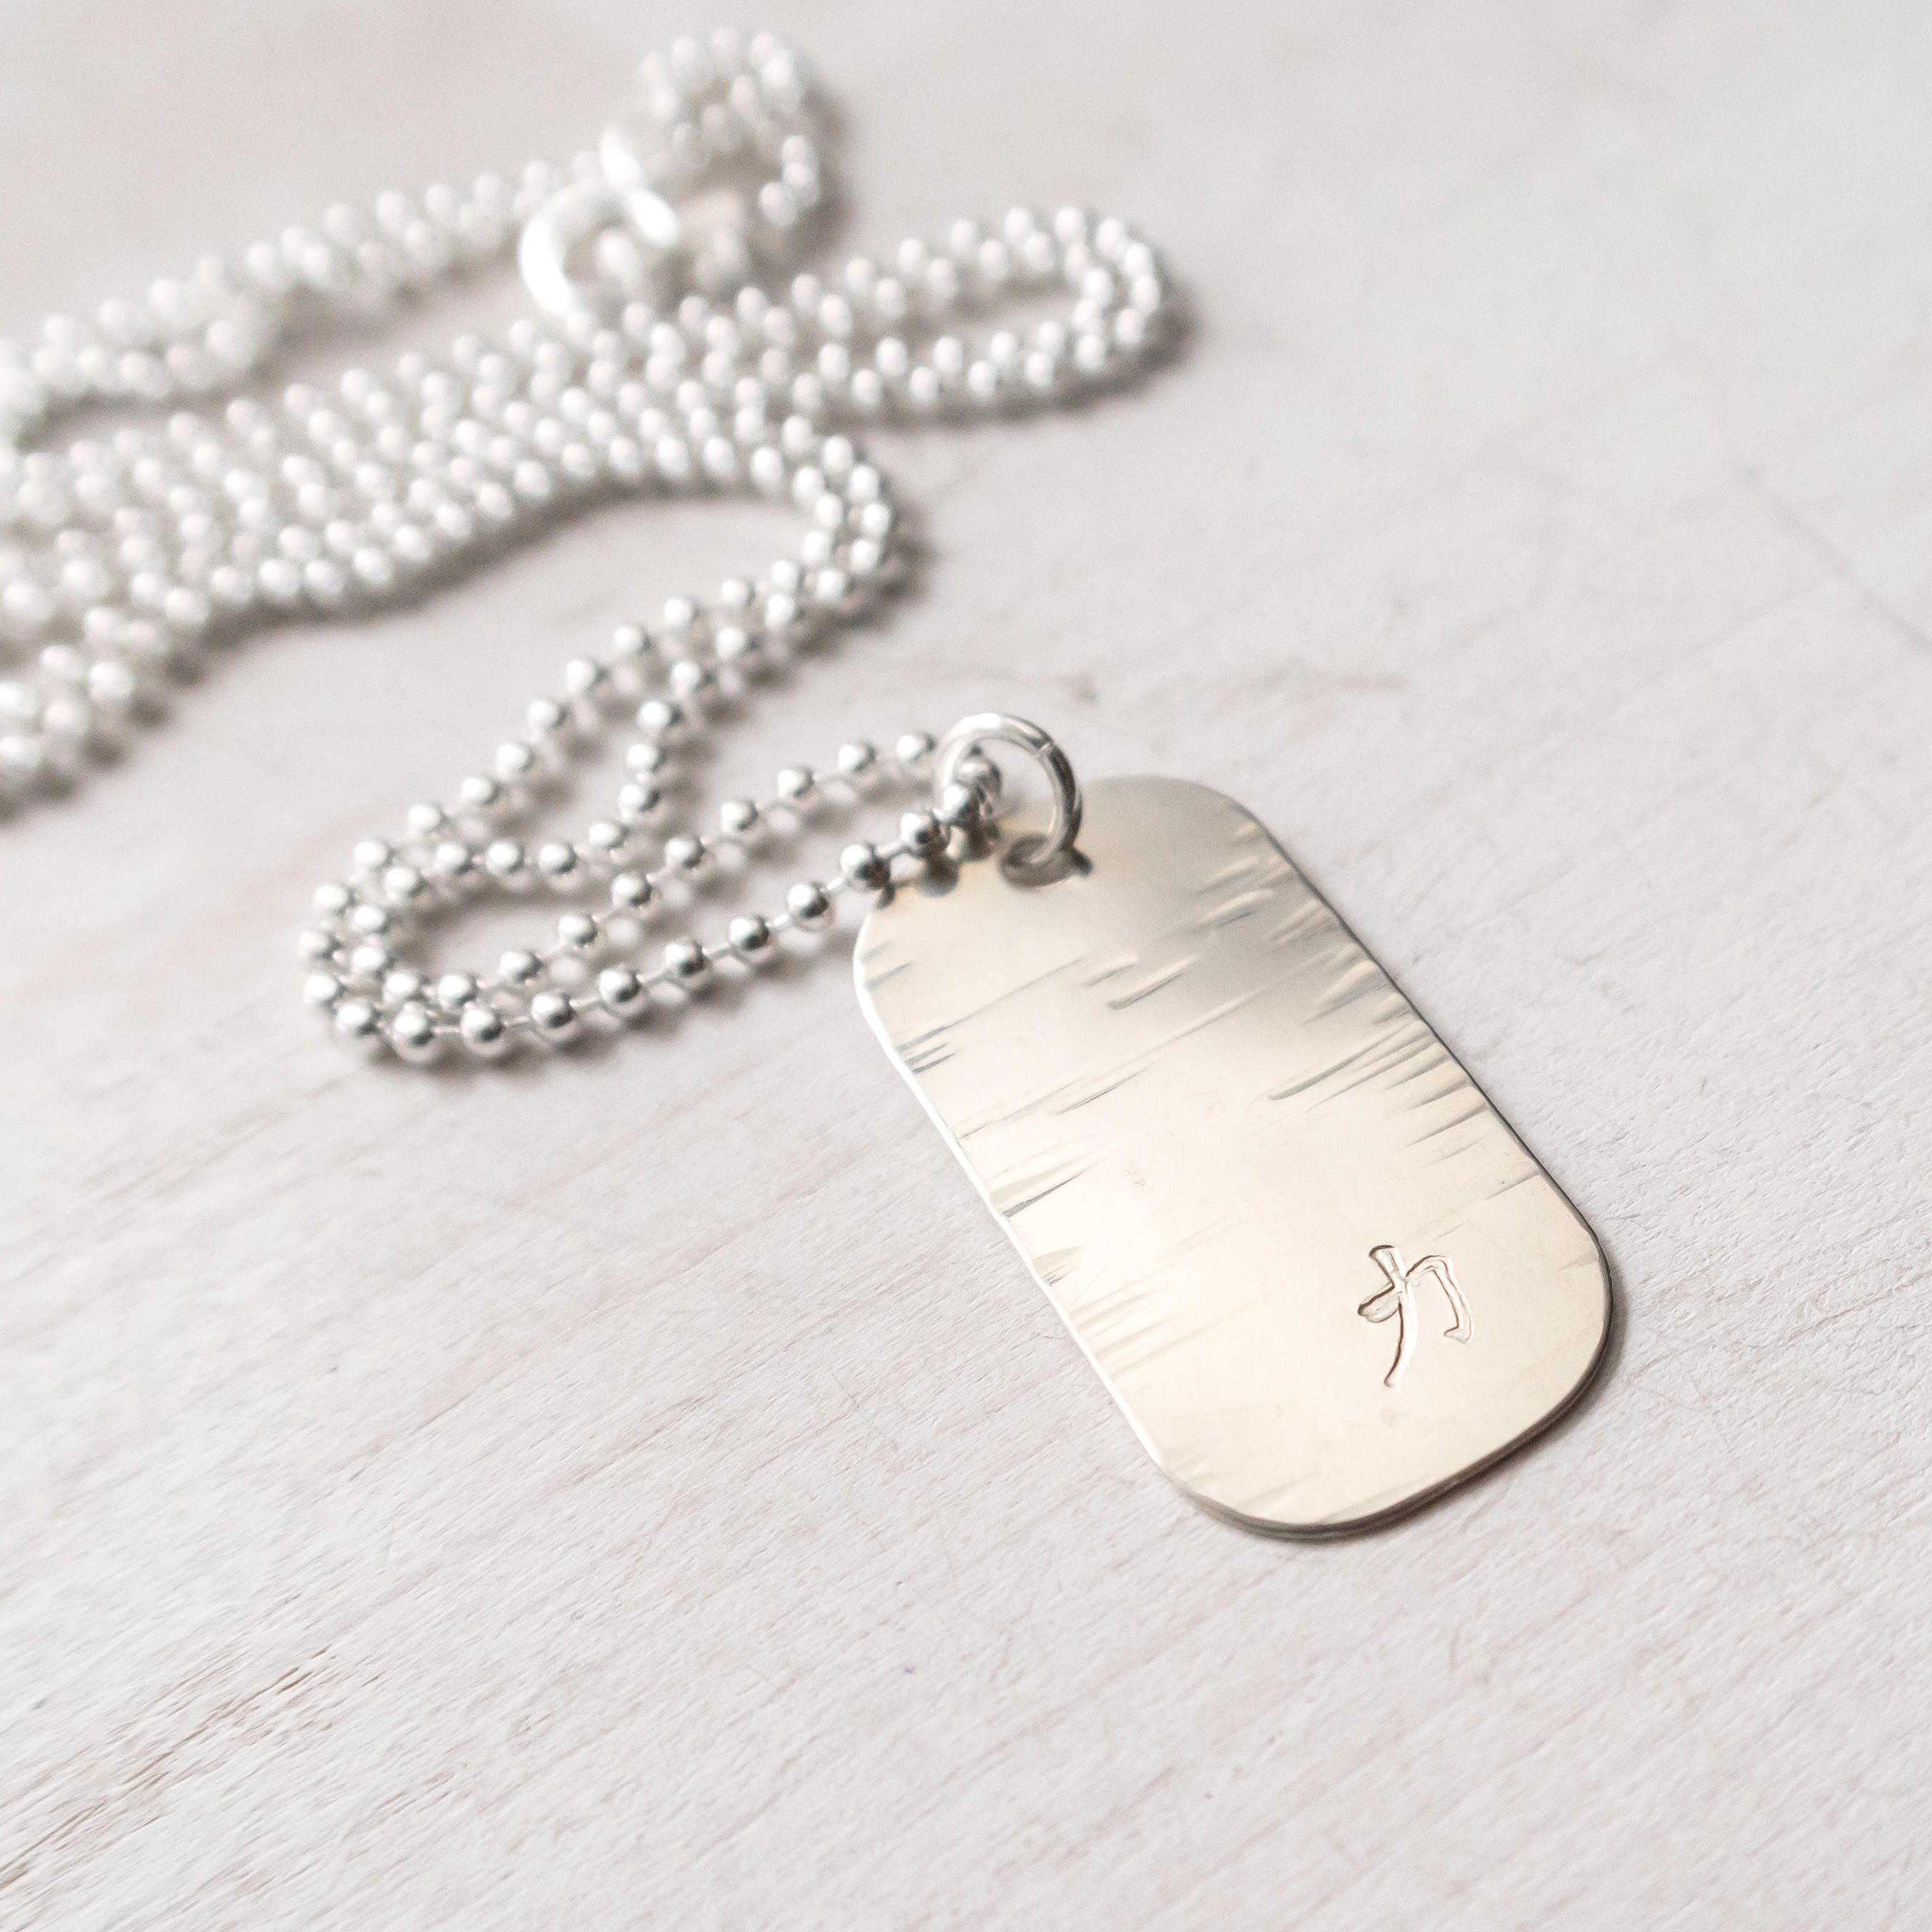 girlfriend b dog military for husband stainless gifts tag necklaces necklace chains com jewelry force and boyfriend wife pendants amazon mens air